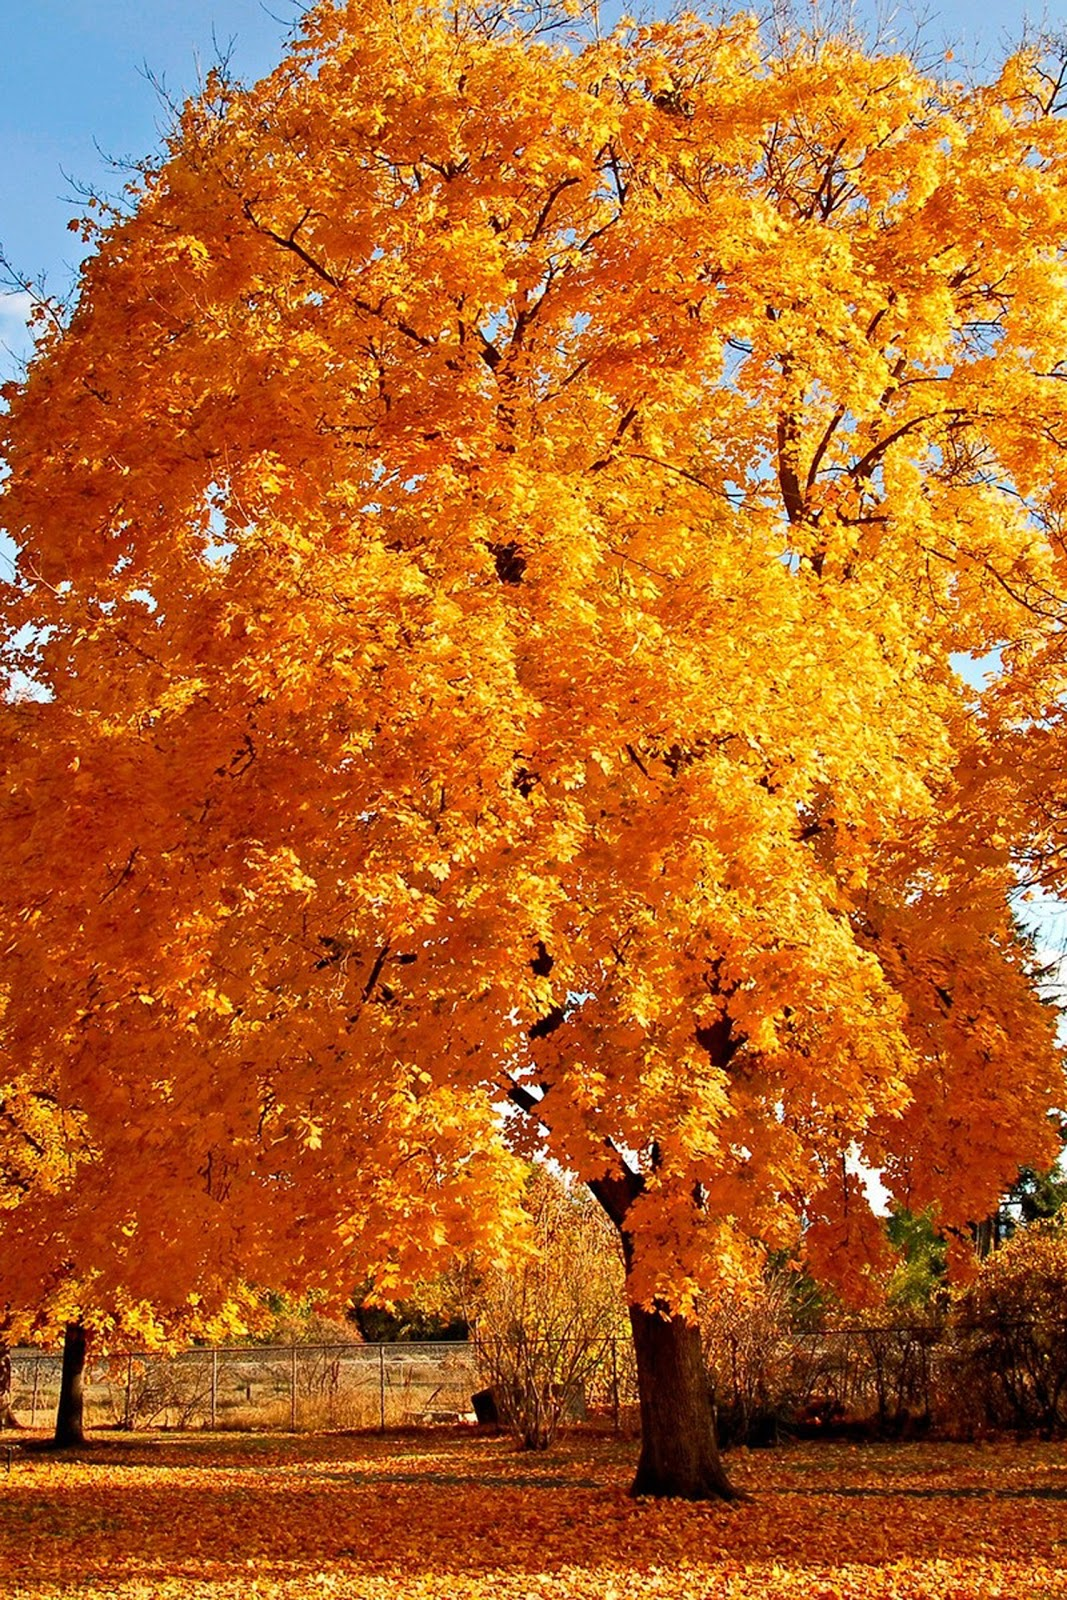 http://1.bp.blogspot.com/-dtQ0v9gy-AQ/Txl2xva23aI/AAAAAAAACCI/Kk7YqZz8P_I/s1600/Autumn+tree+iphone+wallpaper.jpg